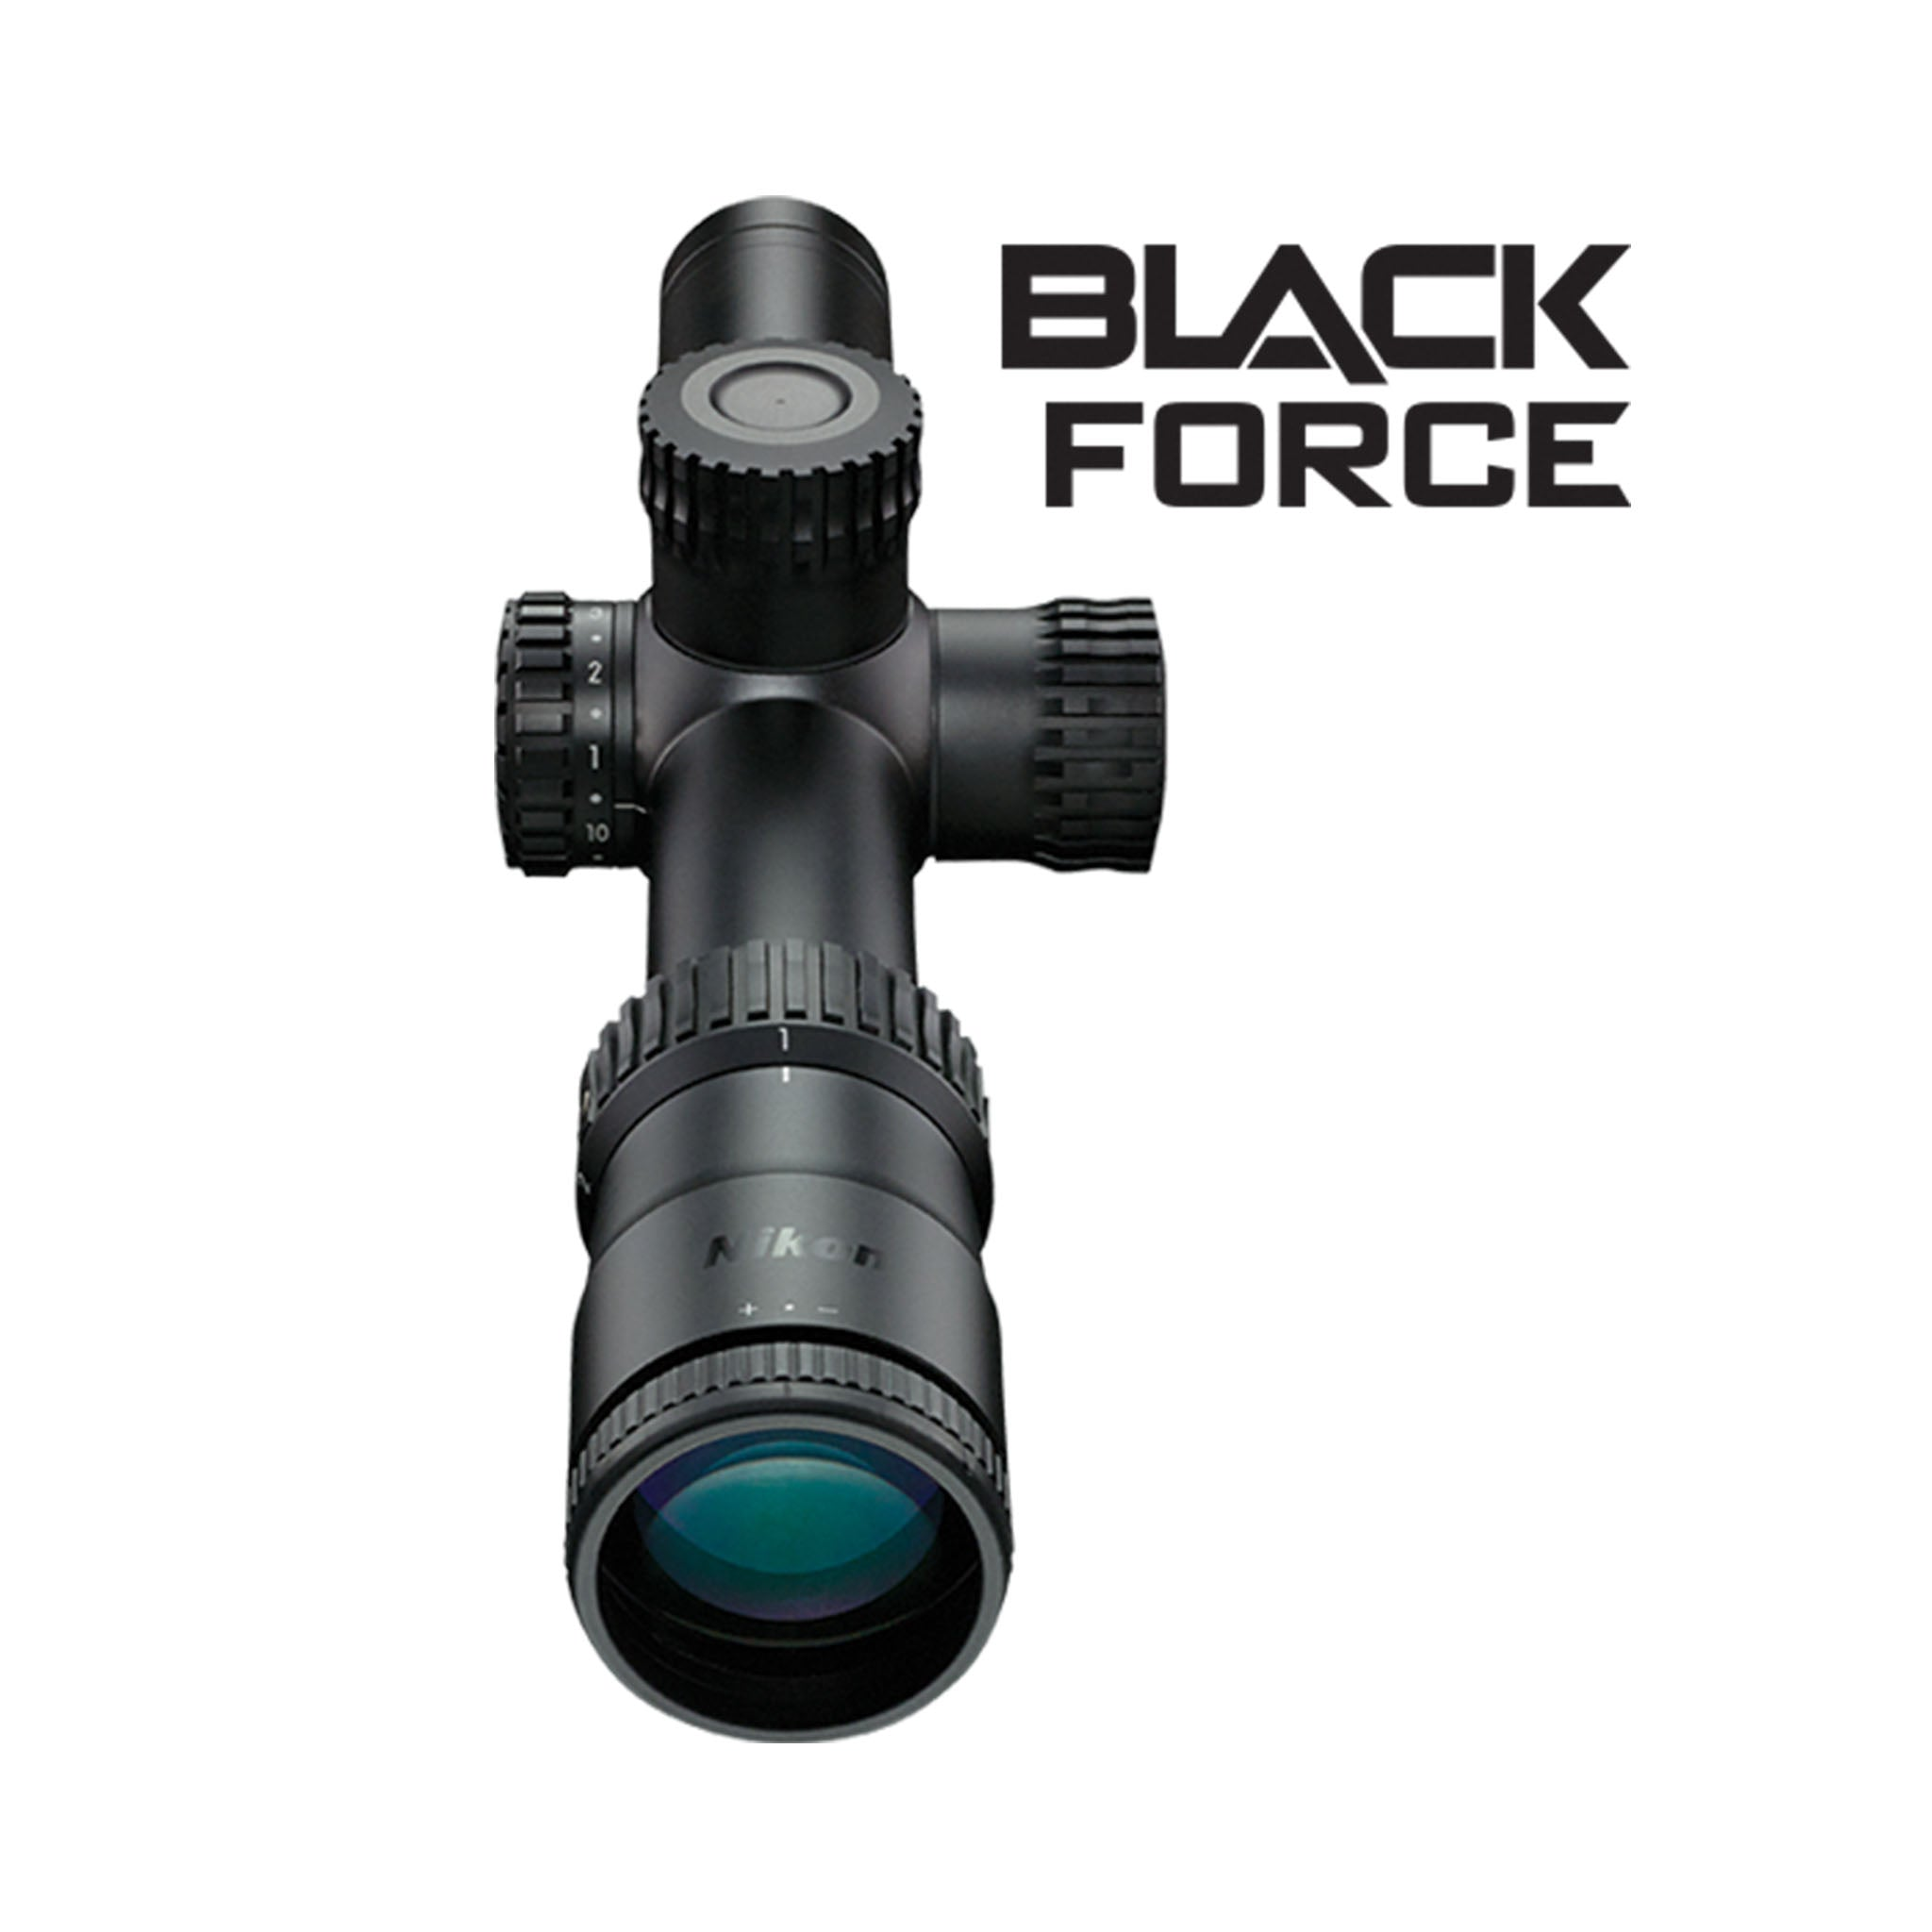 Black Force 1000, 1-4x24mm Riflescope